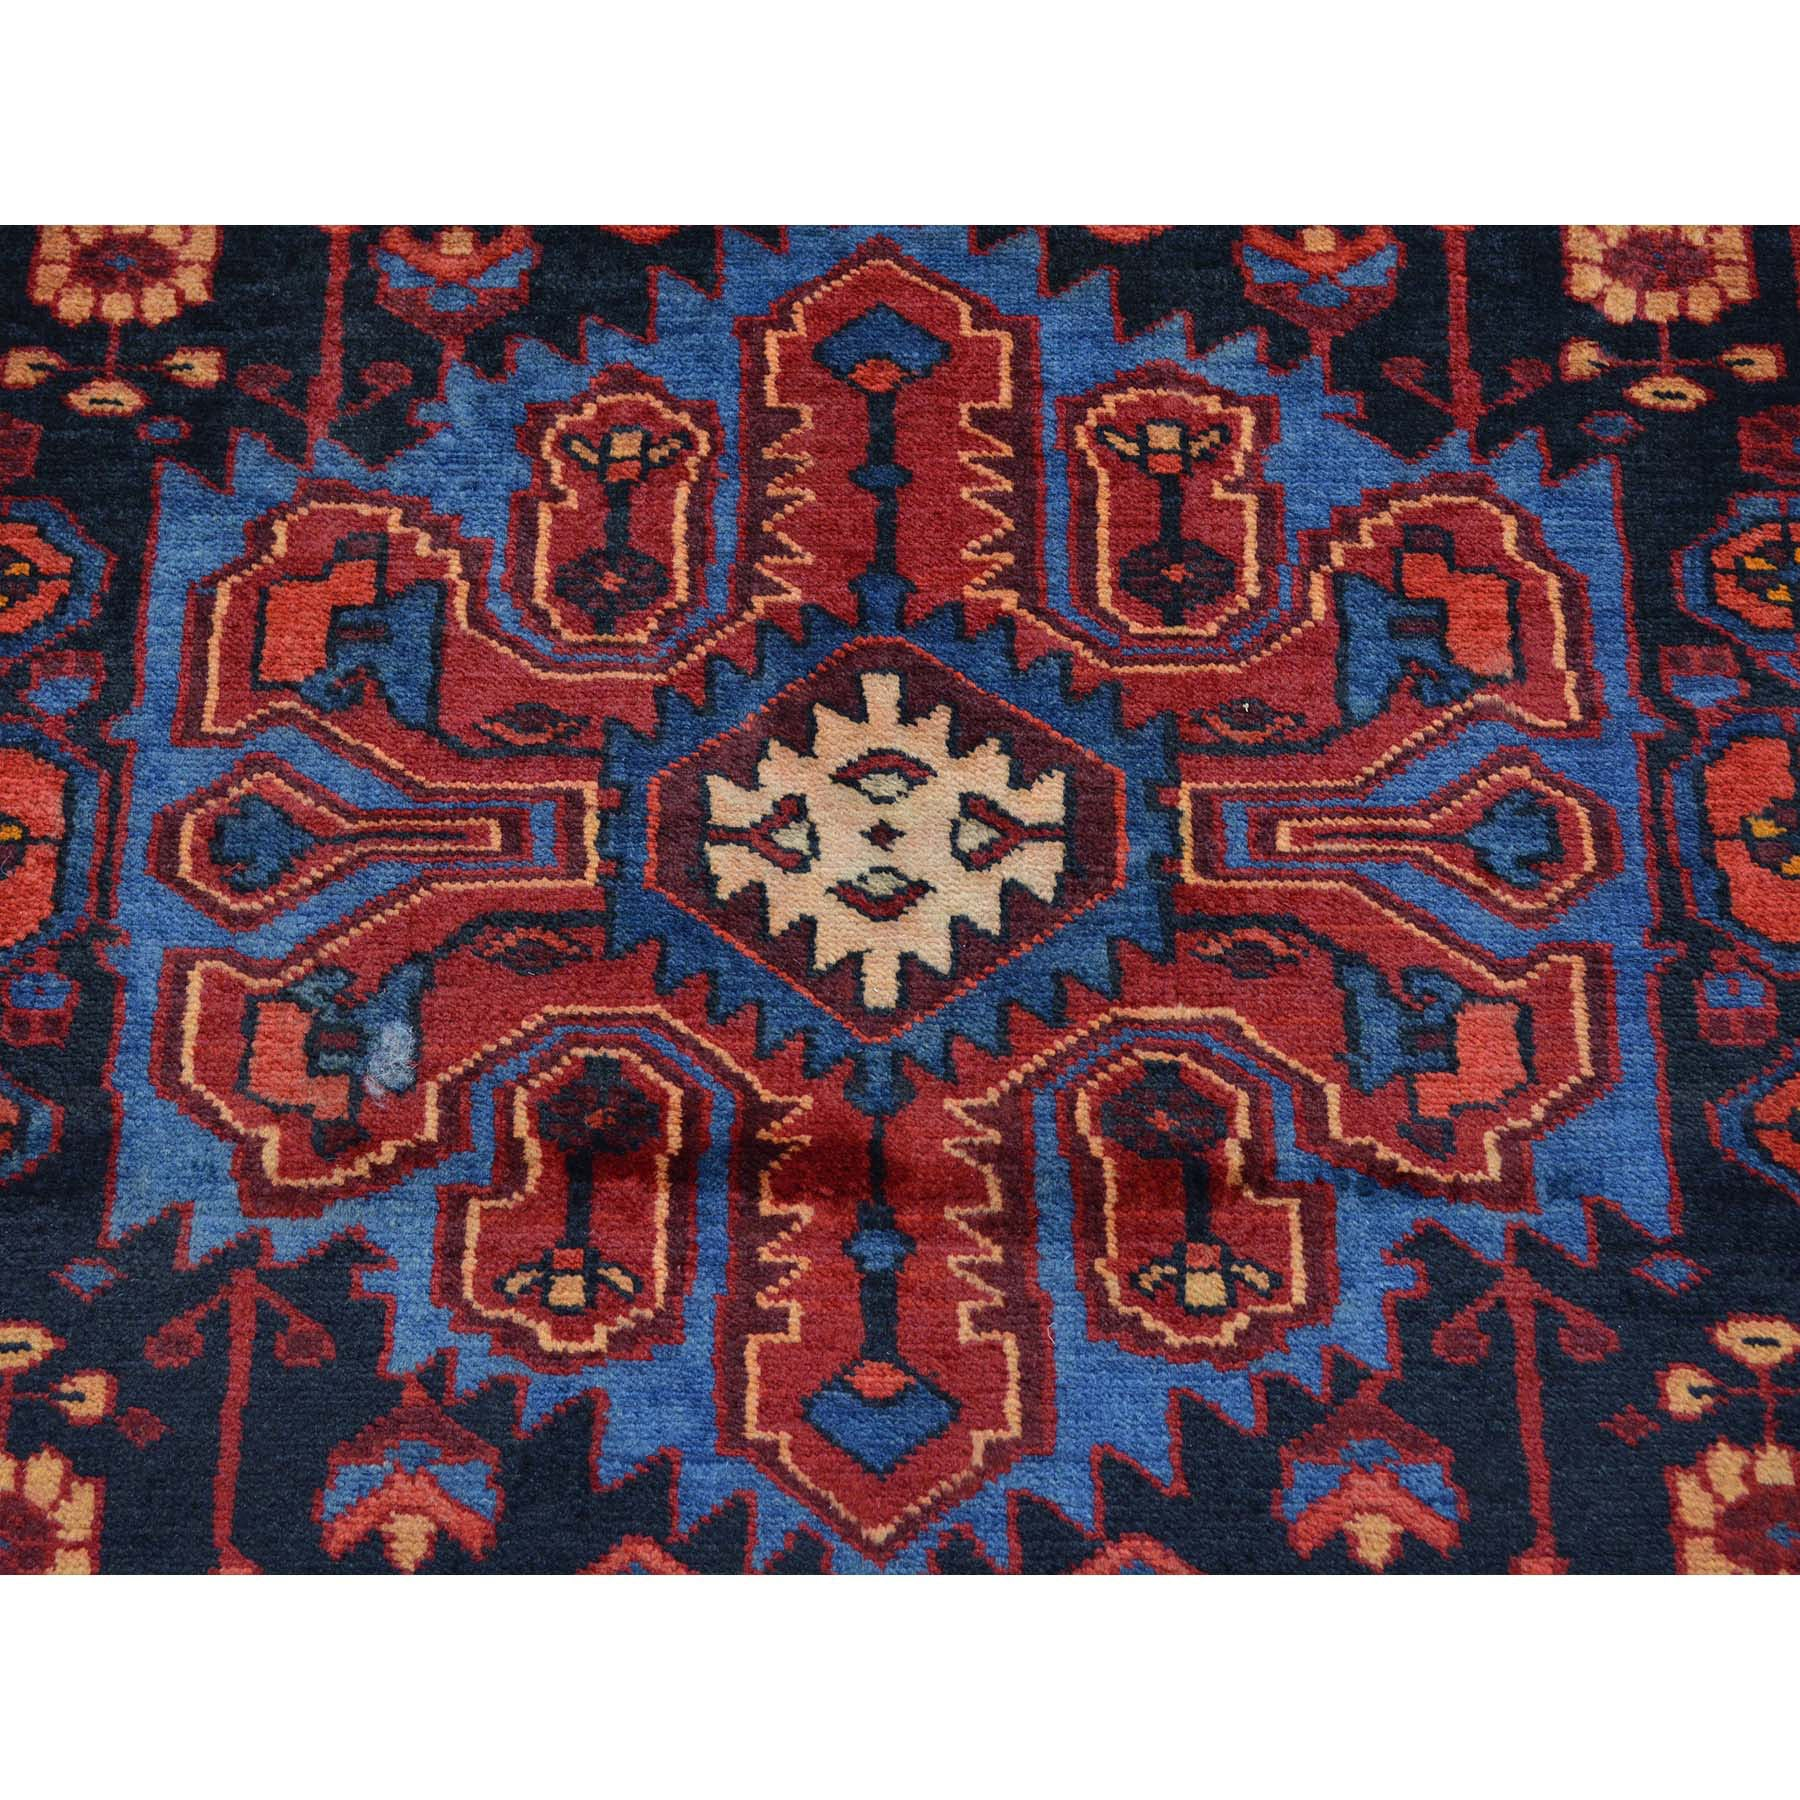 "Handmade Persian Rectangle Rug > Design# SH24521 > Size: 5'-0"" x 8'-6"" [ONLINE ONLY]"